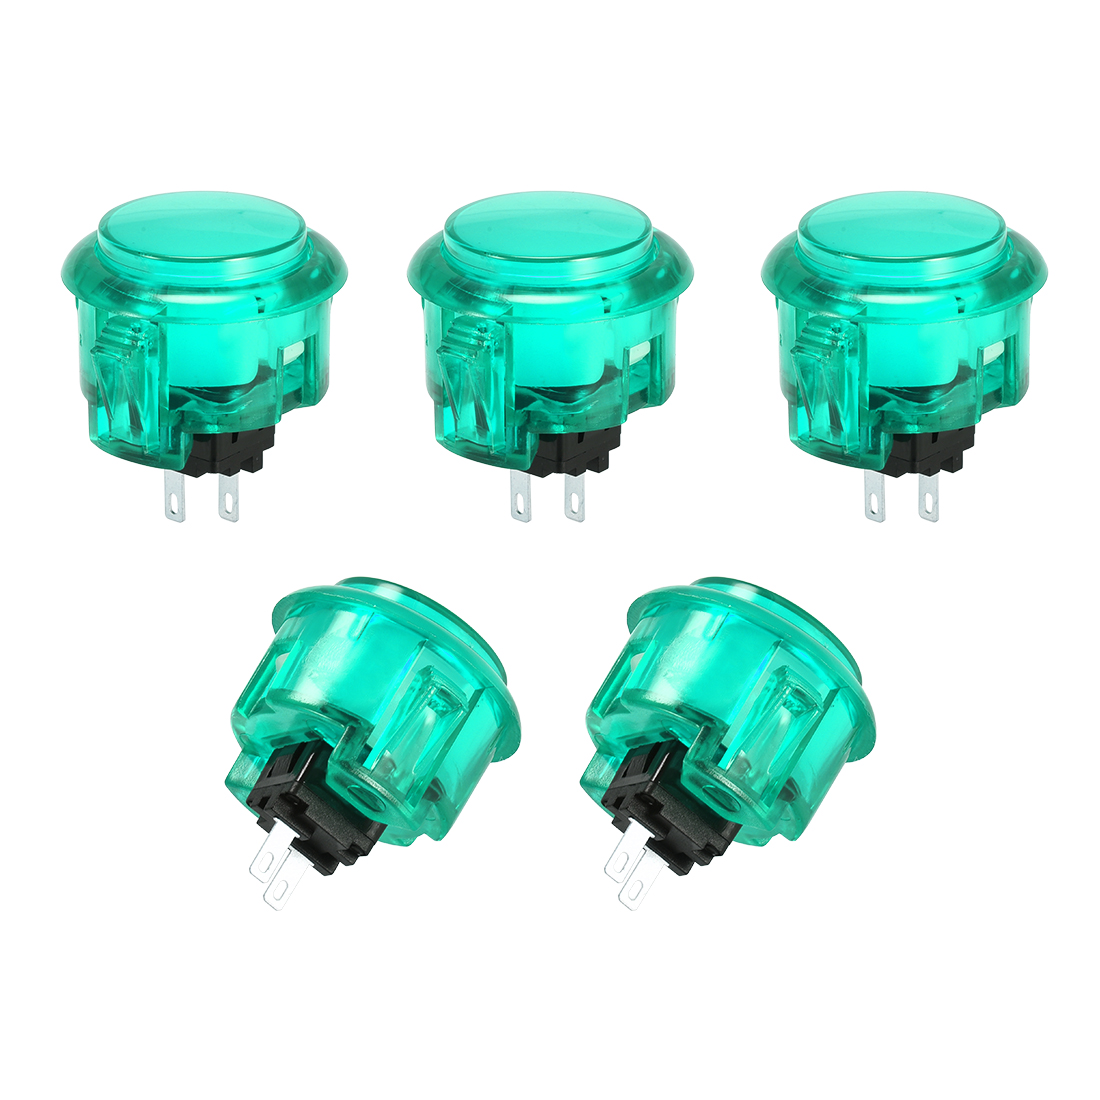 30mm Mounting Momentary Game Push Button for Video Games Green 5pcs